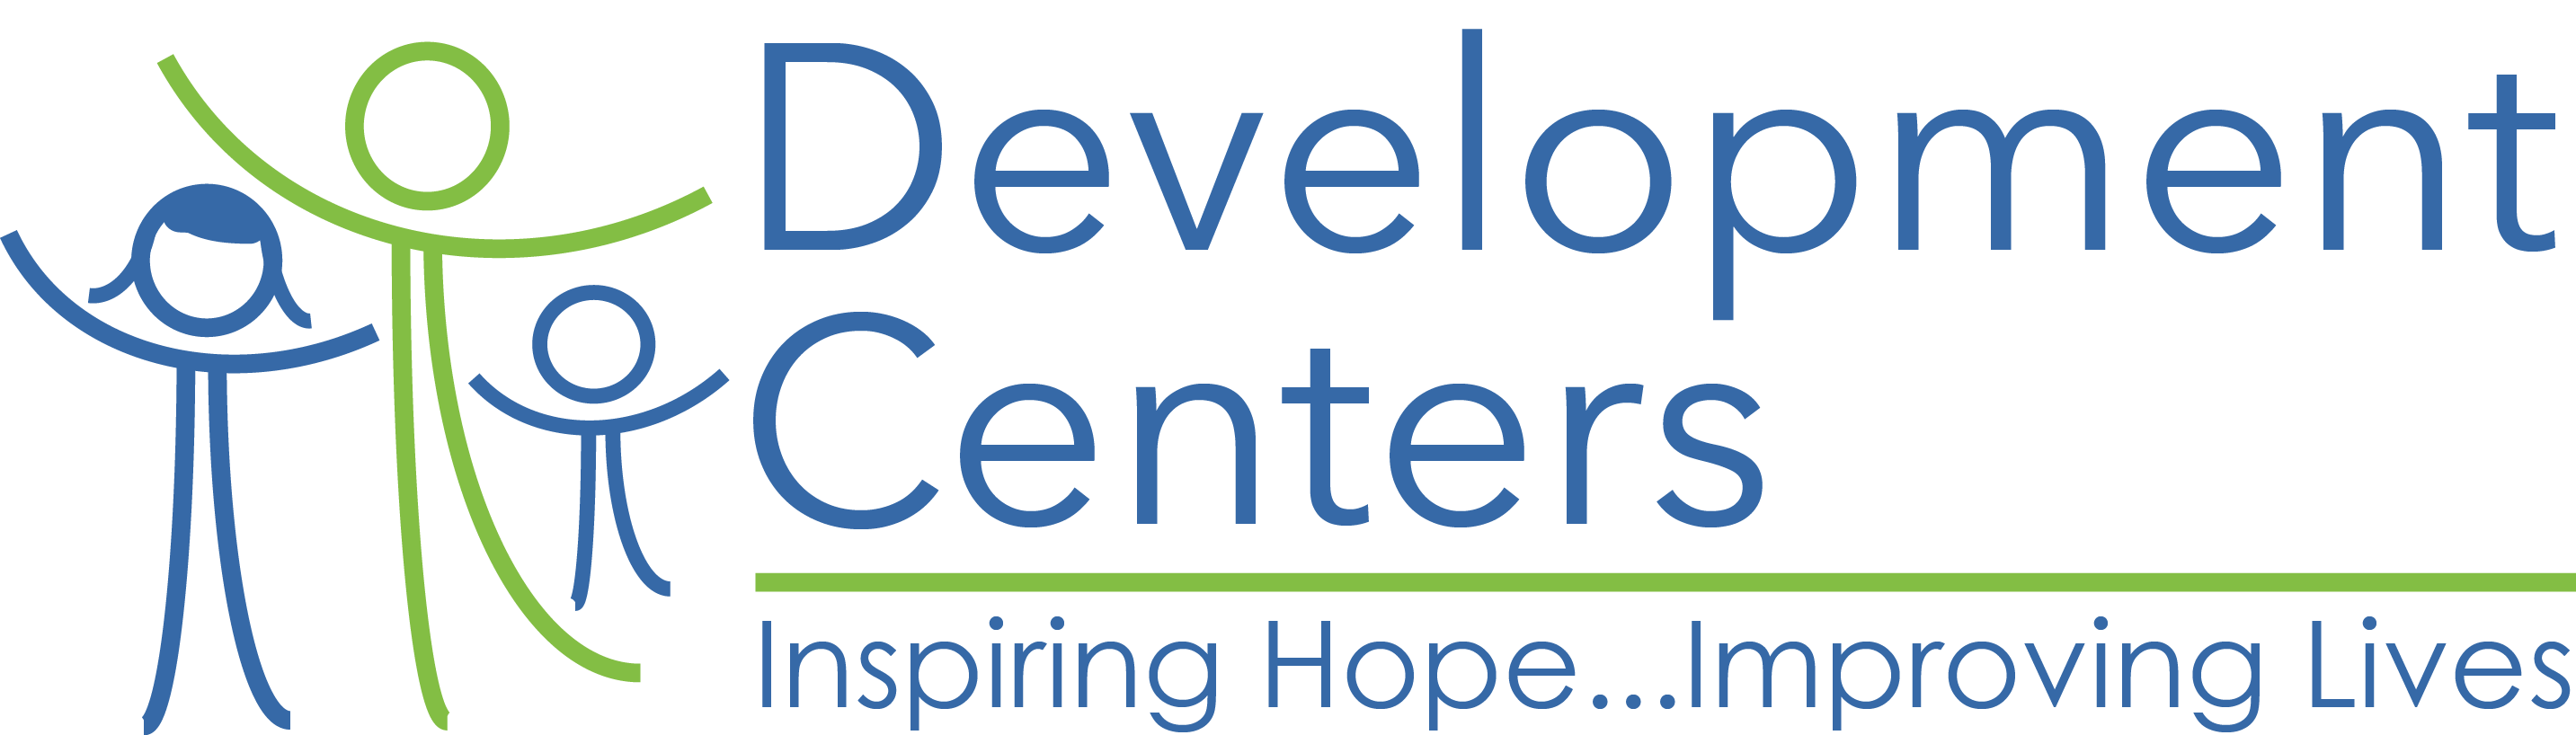 Development Center Logo 8-17-16